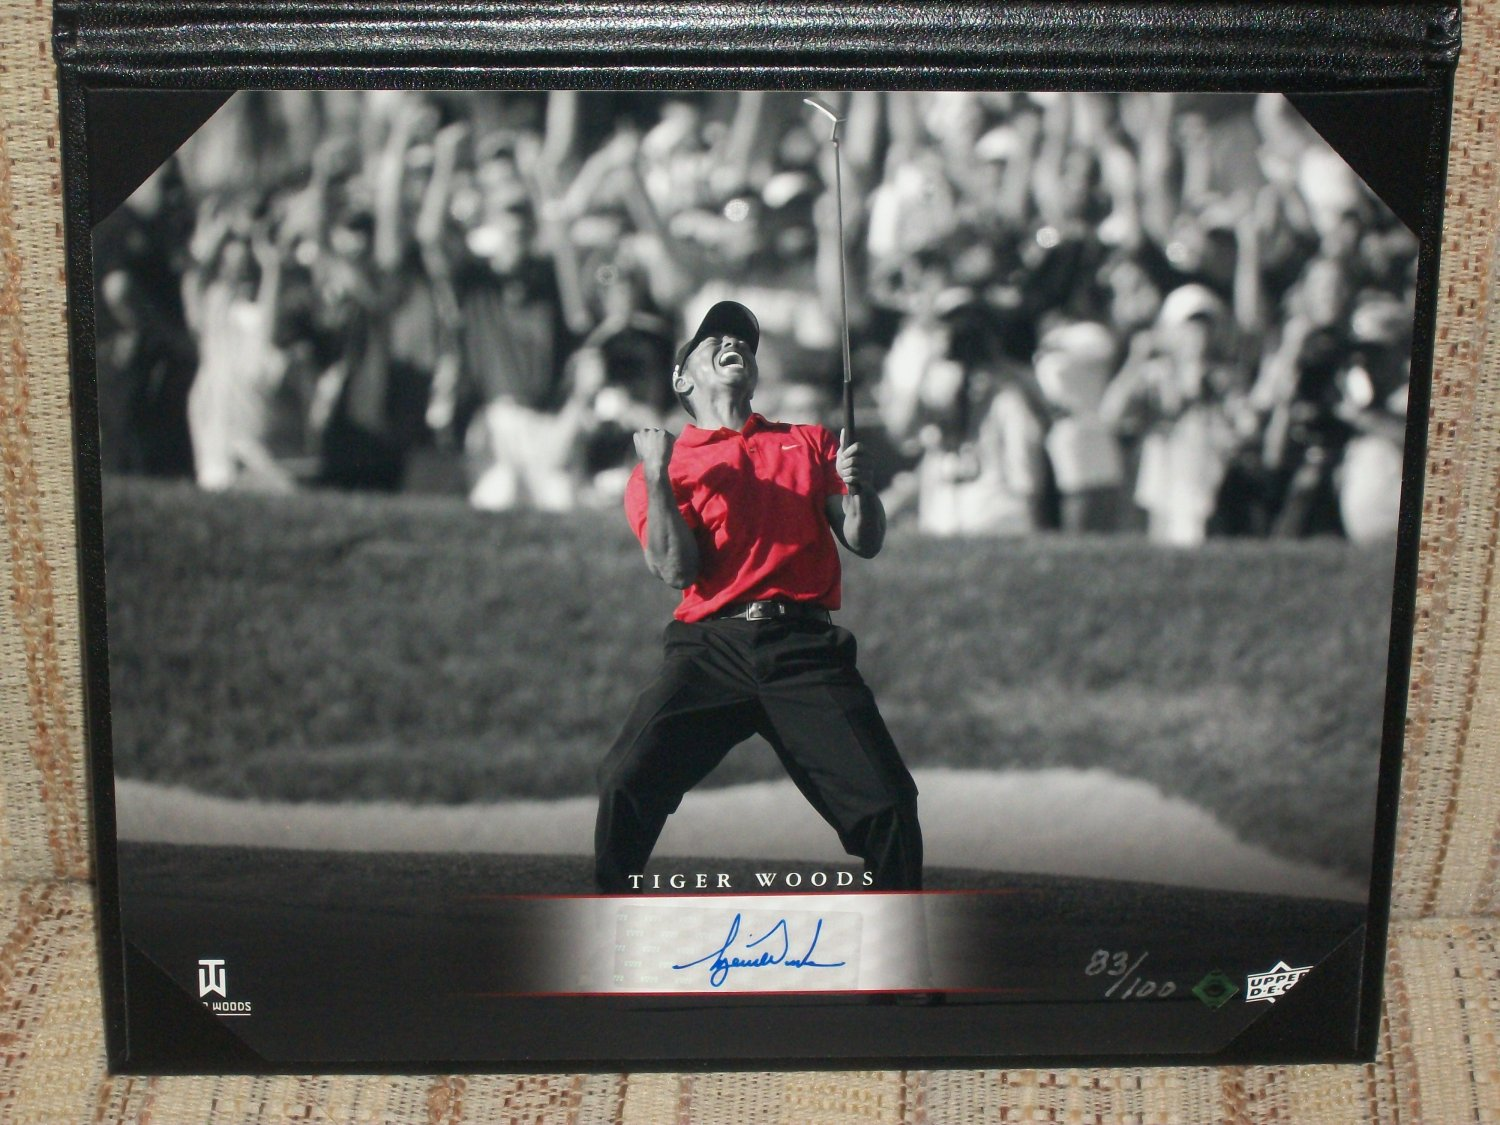 Tiger Woods LE autographed 8x10 UDA photo-2008 Tournament of Champions